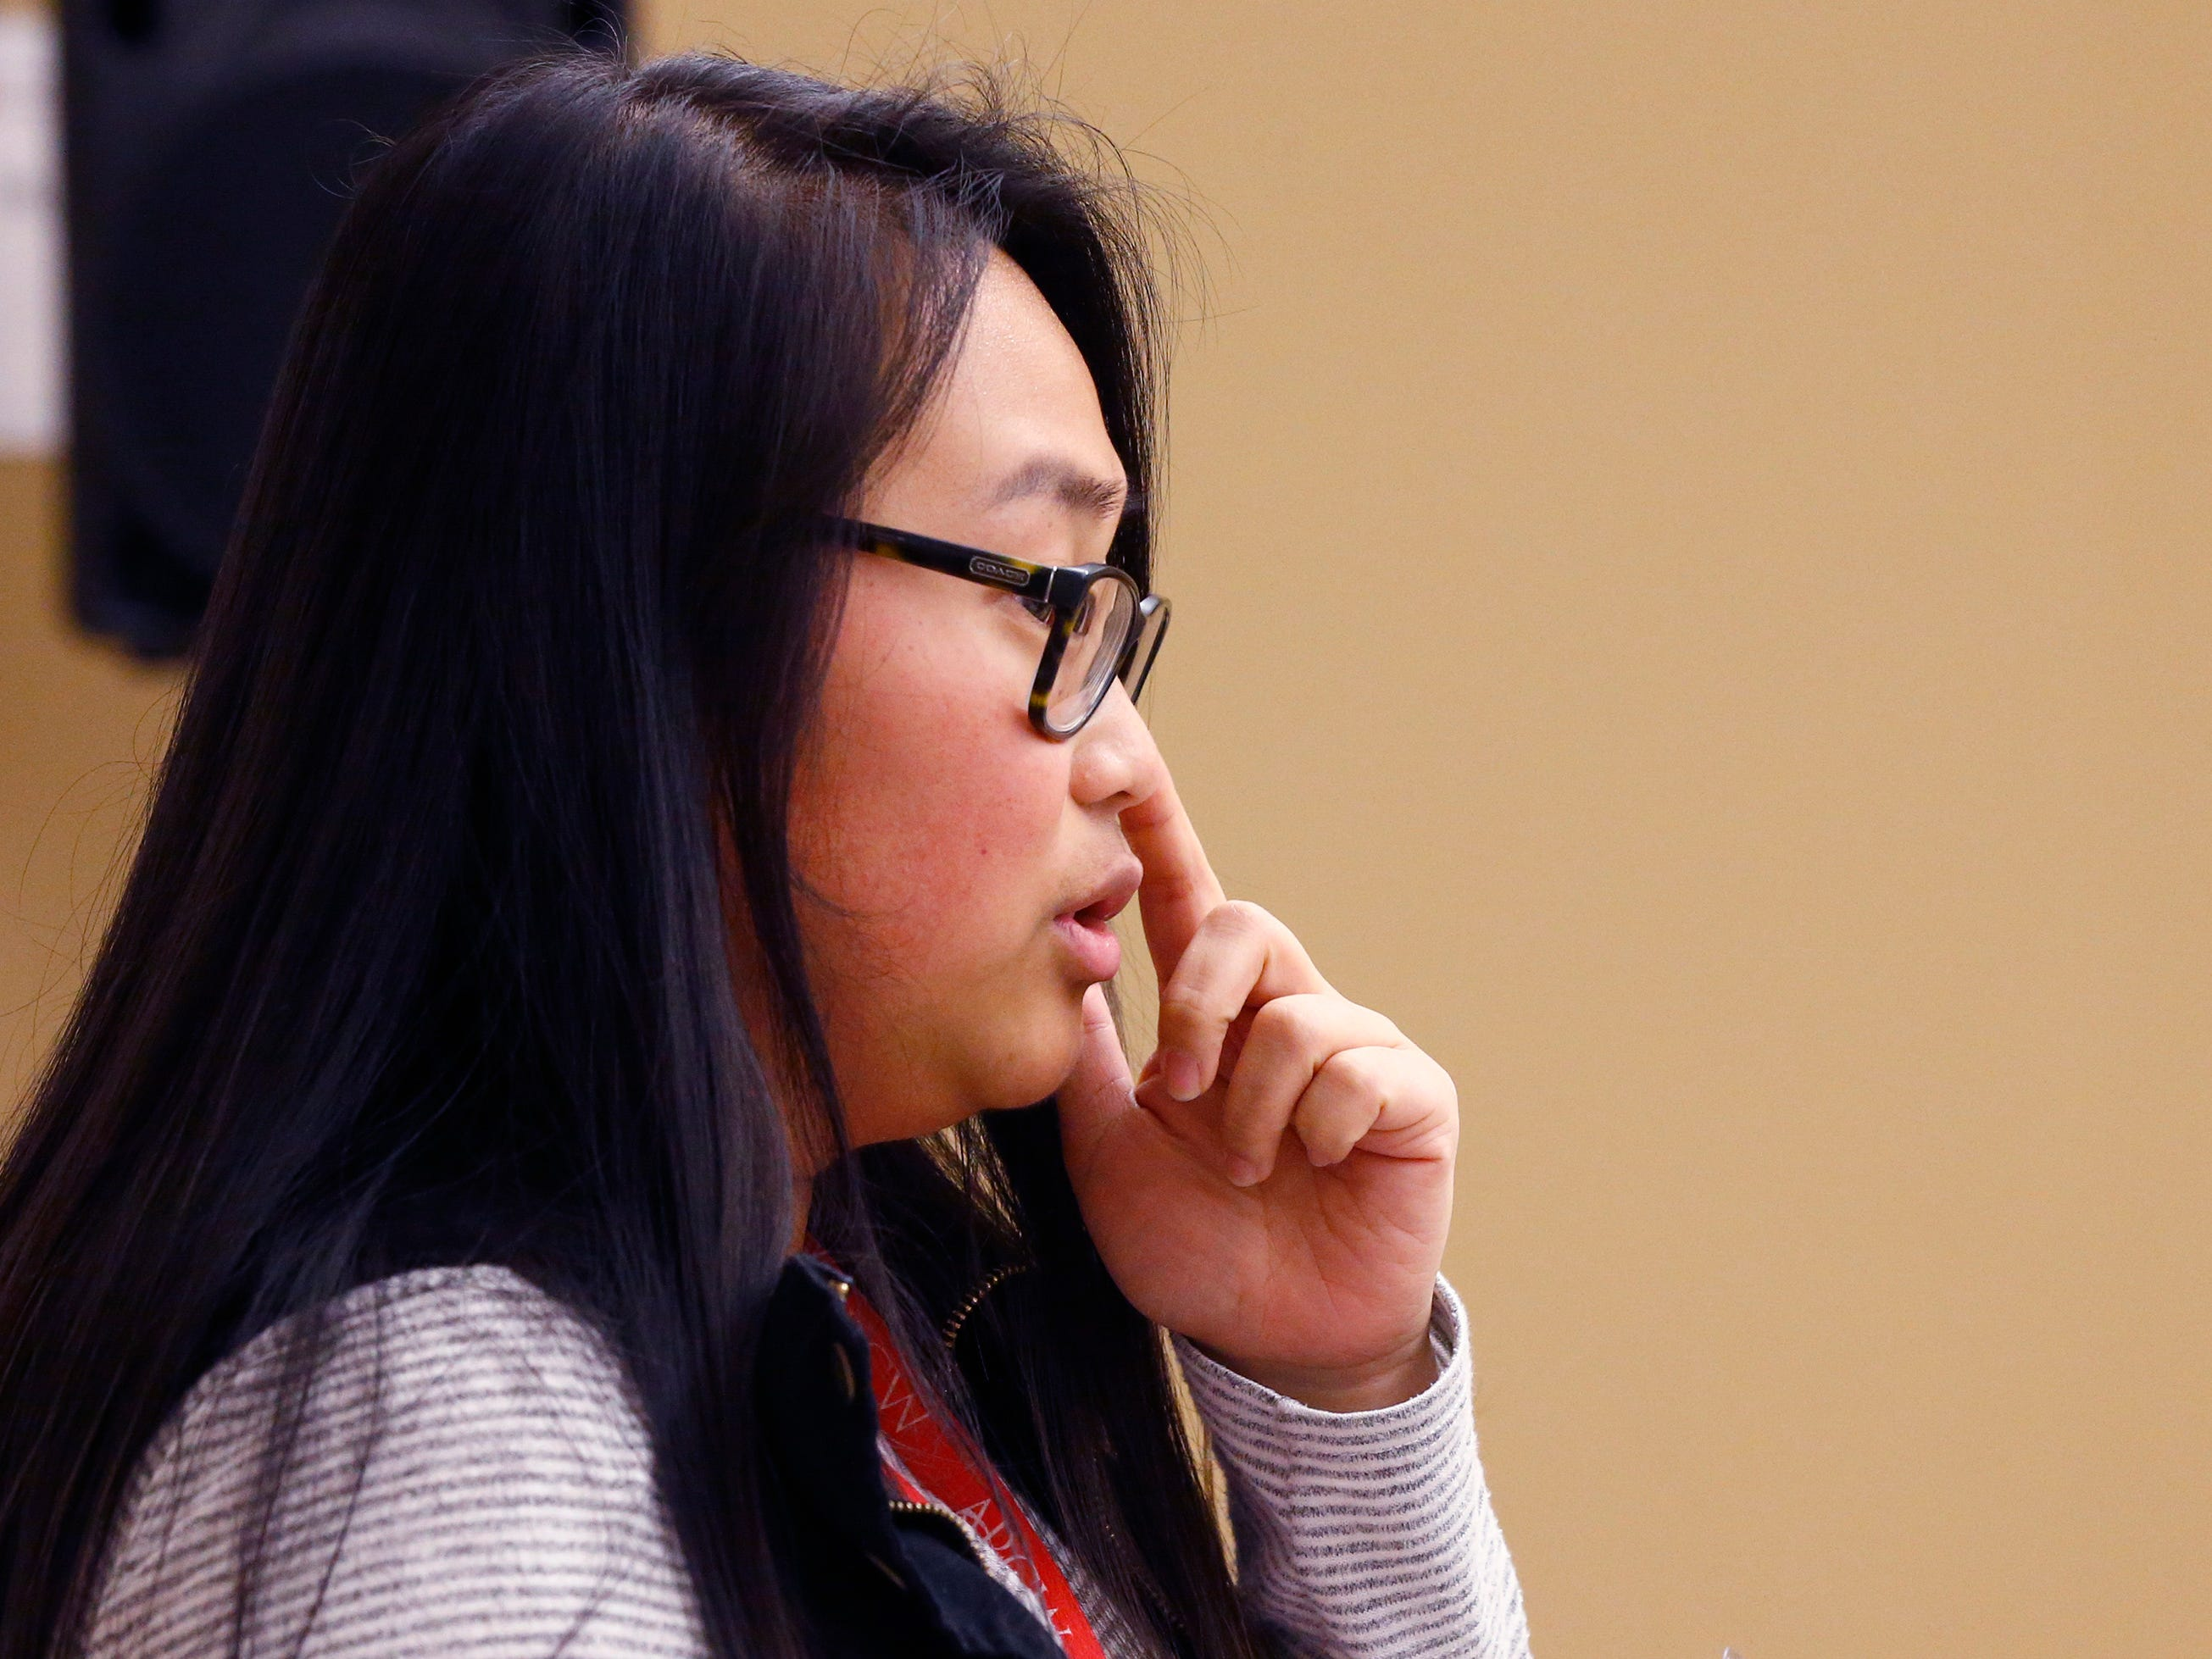 Helen Lai, a prevention specialist from the Aids Resource Center of Wisconsin, describes how to administer nasal Narcan to counteract an opiate overdose during a workshop at the Salvation Army's Greenfield facility on Jan. 24.